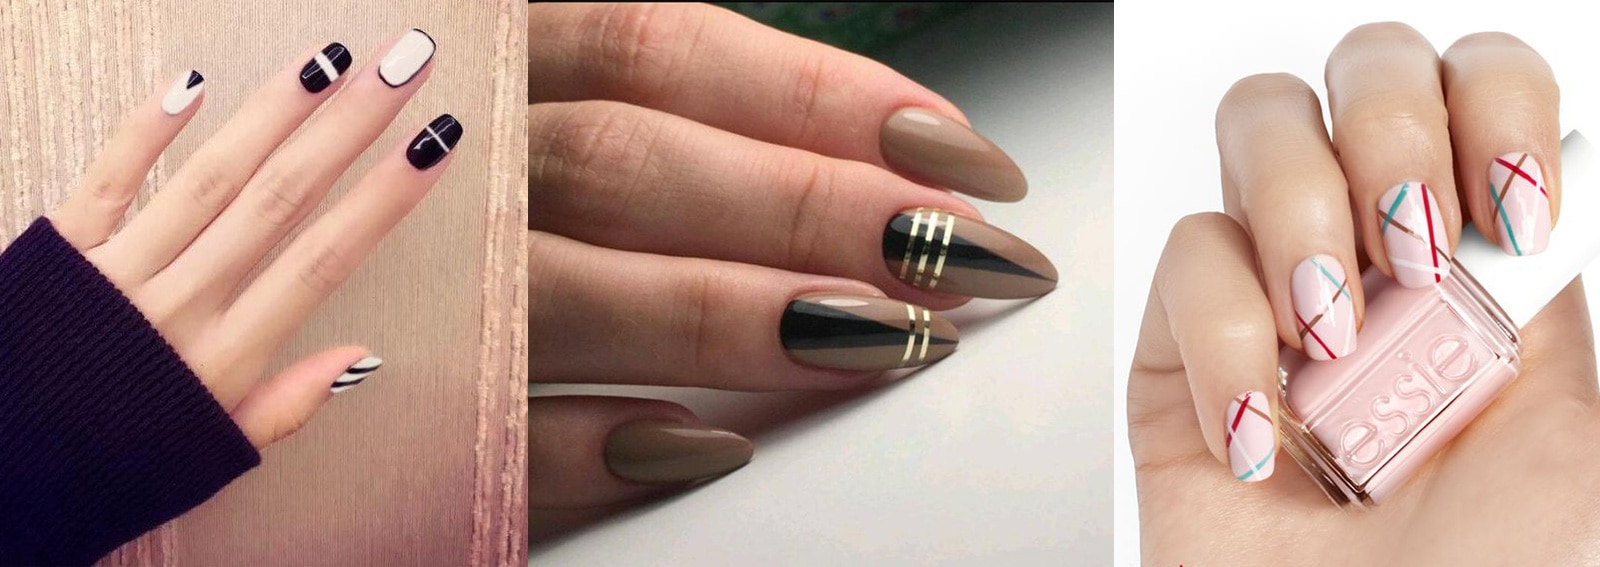 nail-art-linee-geometrice-tendenze-unghie-autunno-inverno-2019-2020-cover-desktop-01